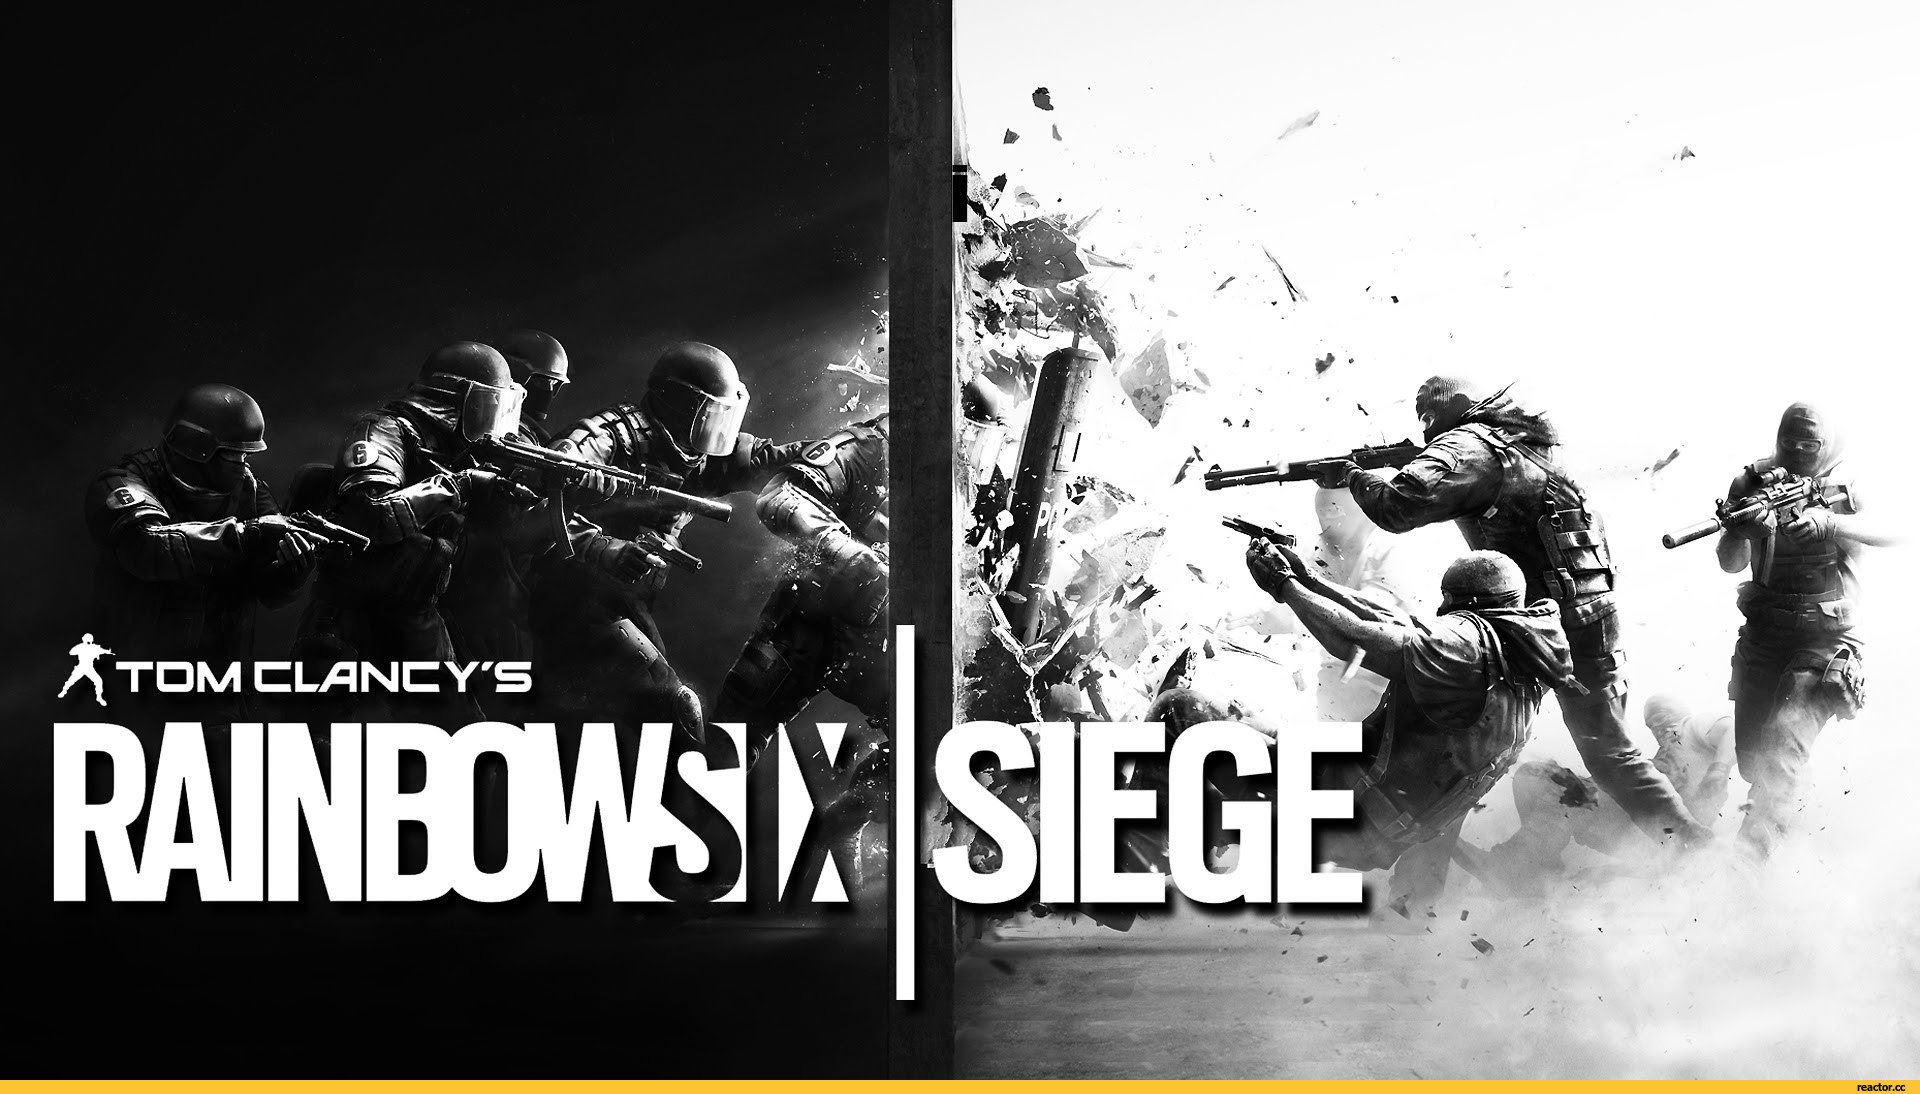 Tom Clancy's Rainbow Six Siege - Uplay account